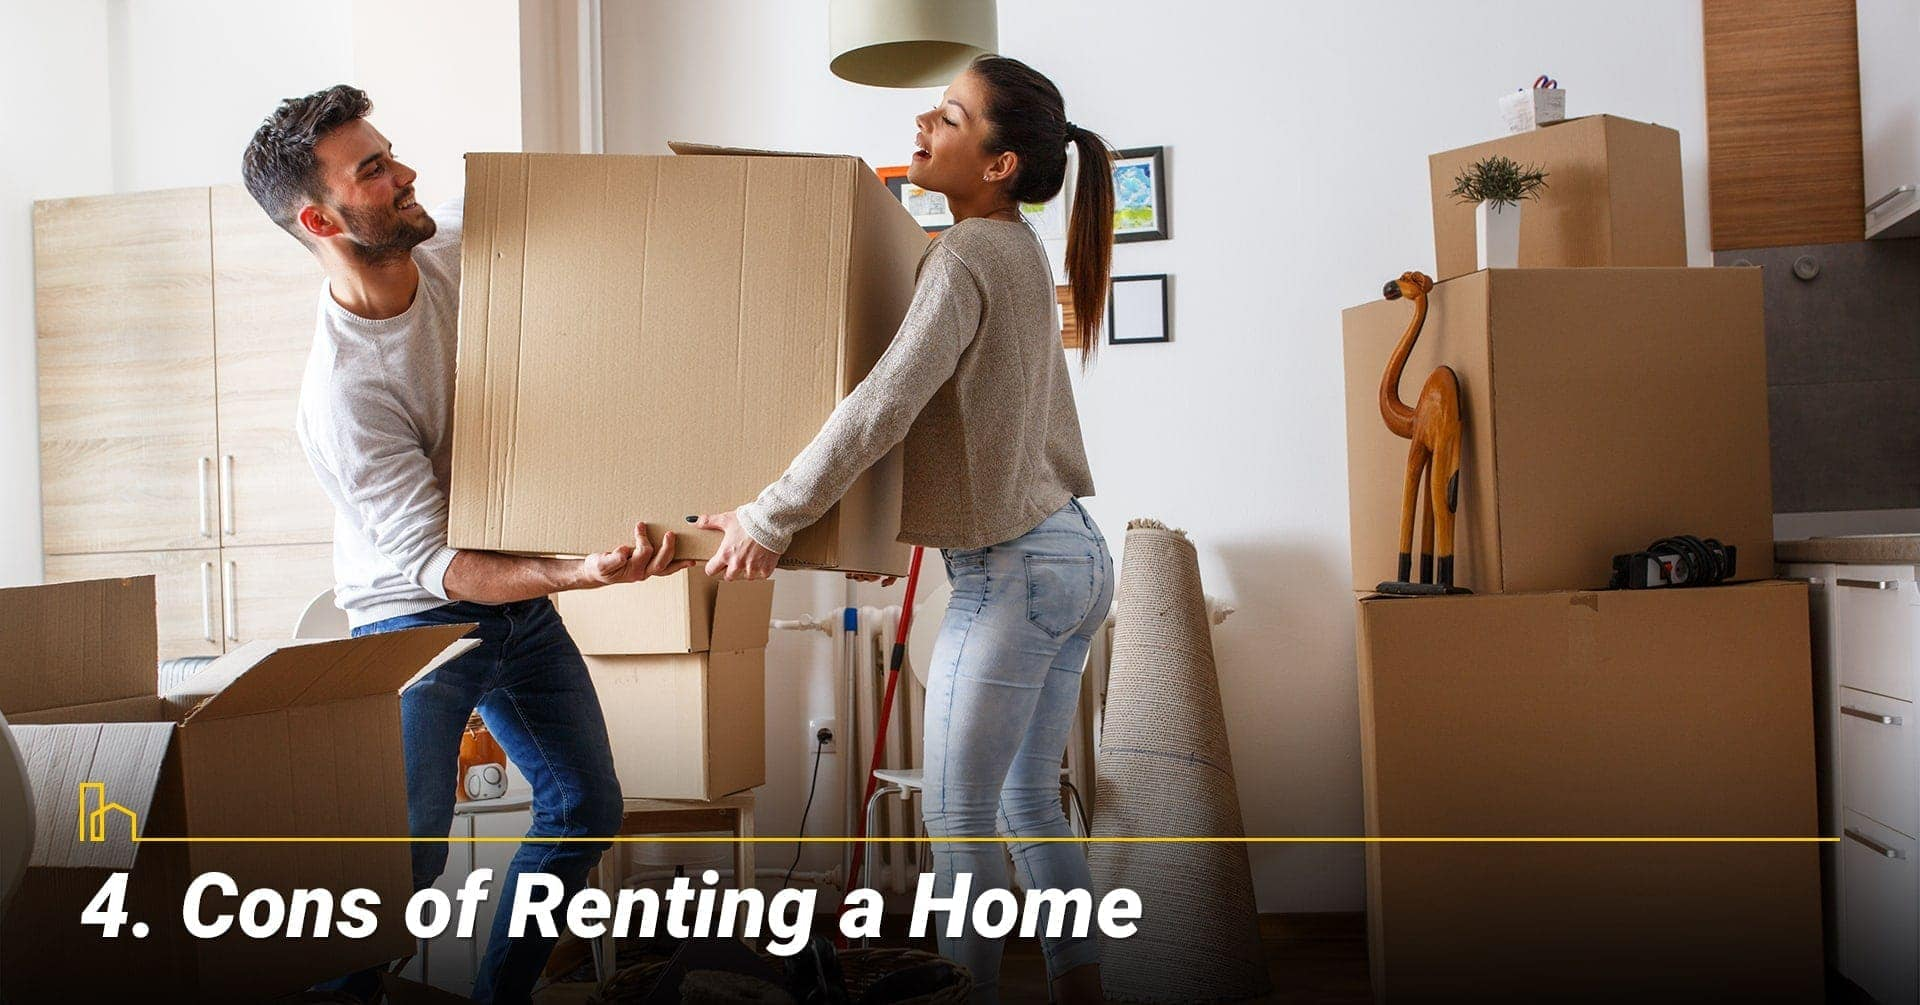 Cons of Renting a Home, disadvantages of rent out your home